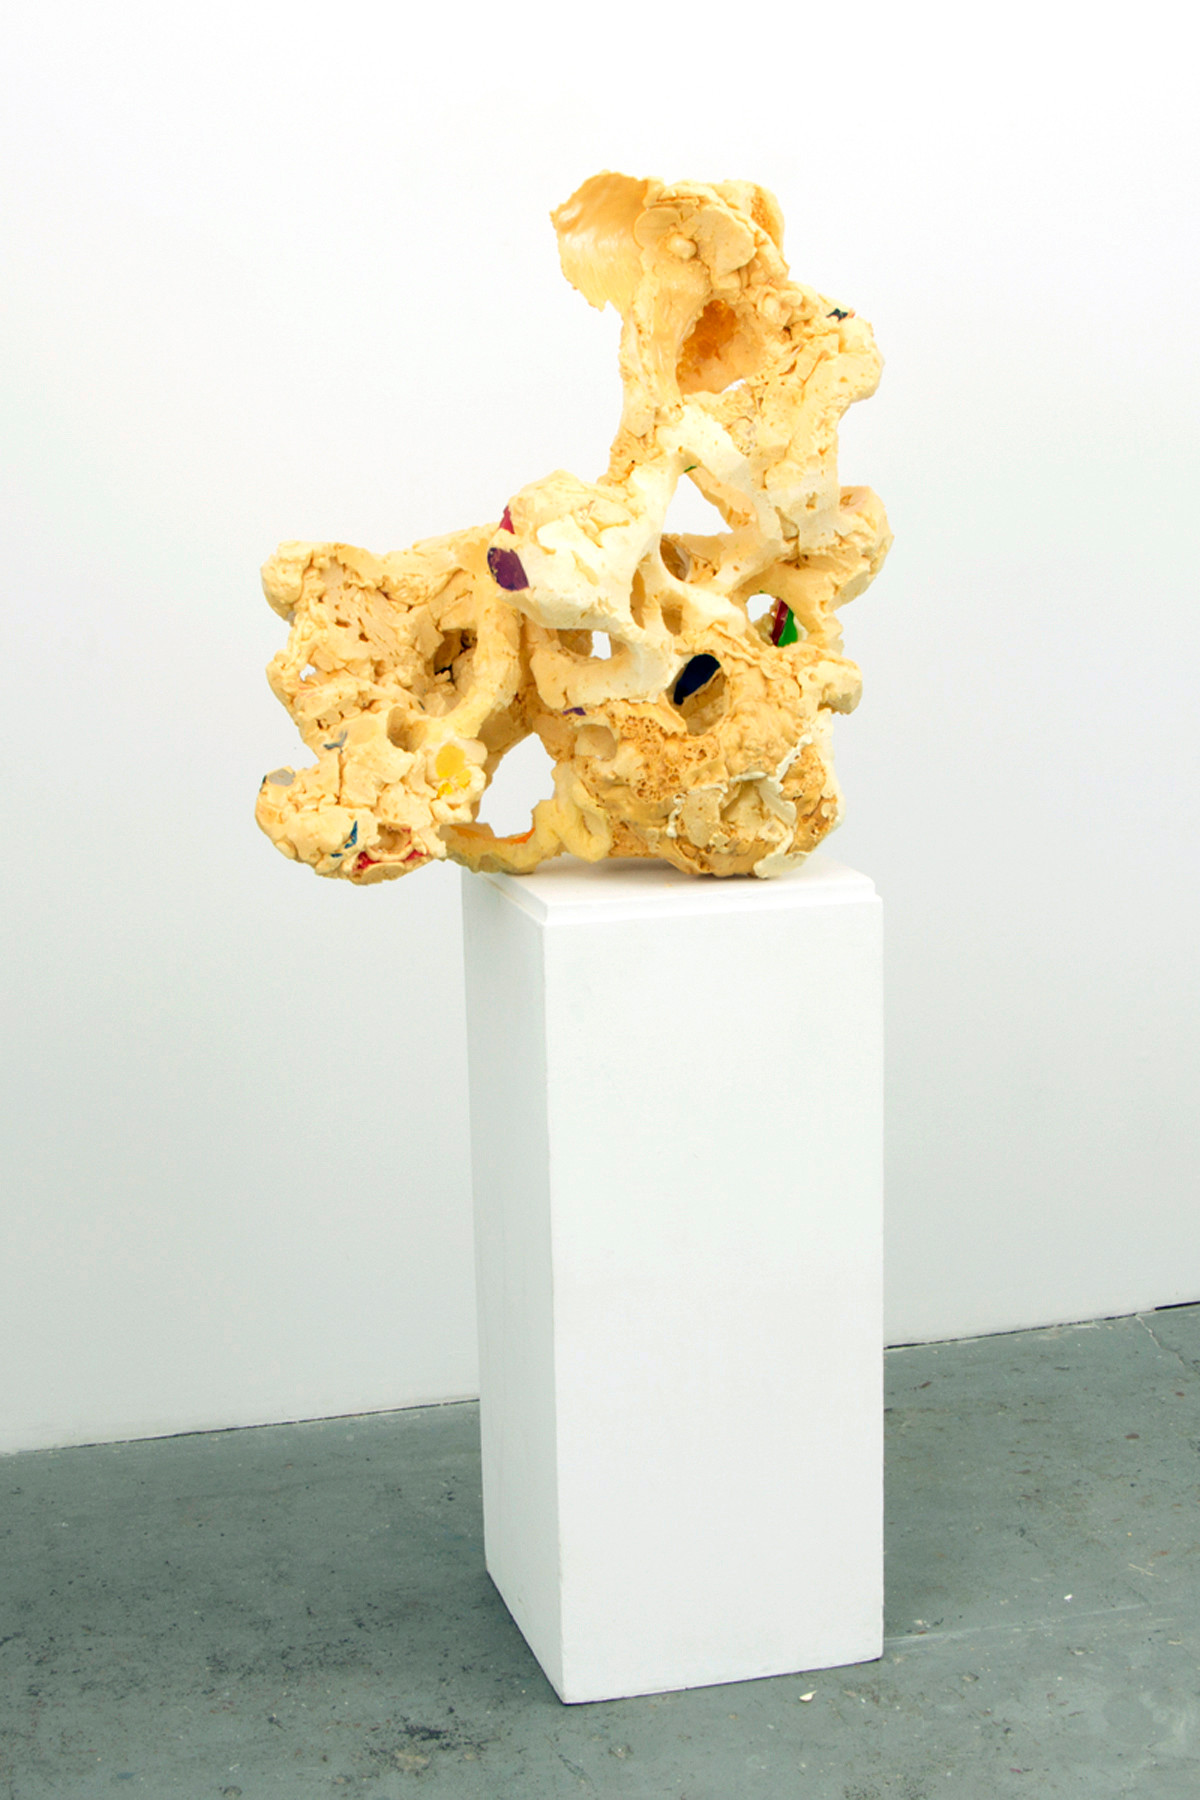 FRNKS Lung, studio debirs (Insulations foam and latex), dimensions vary, 2008-2014 (ongoing).